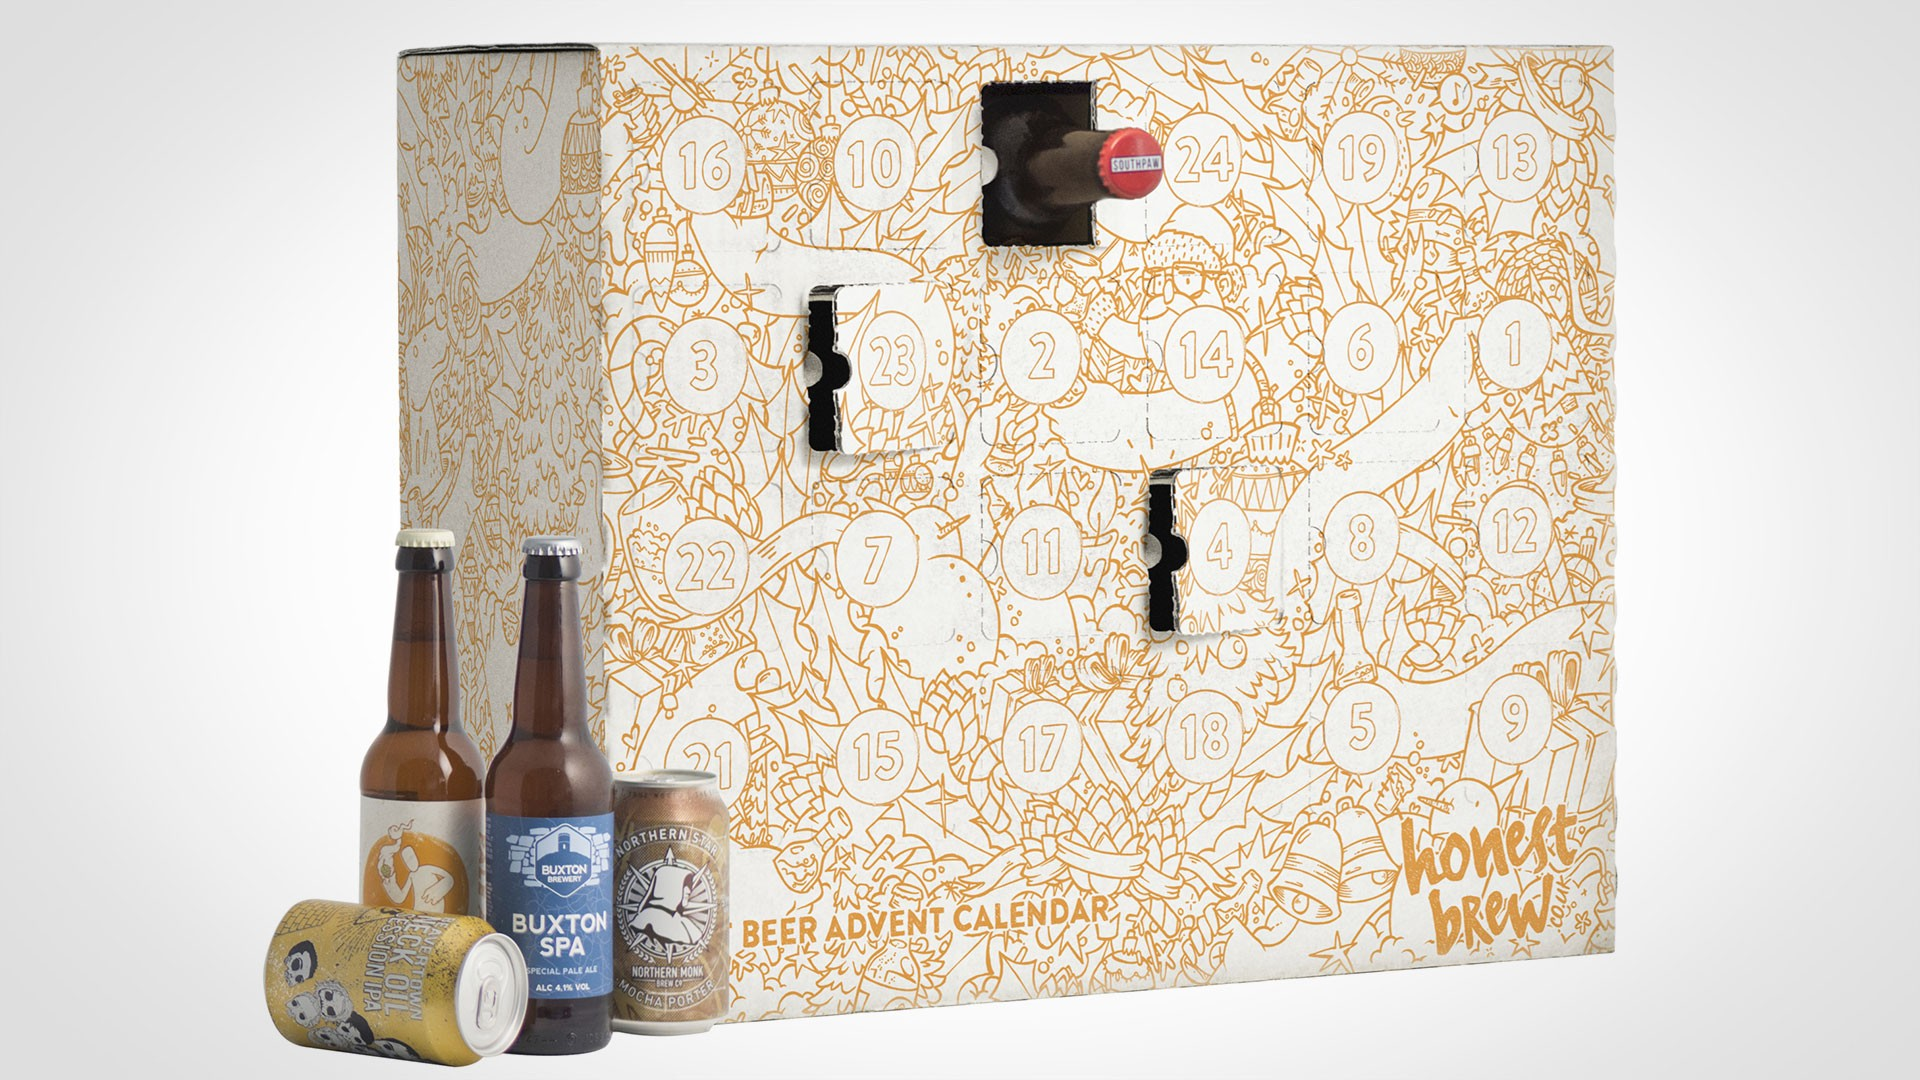 Honest Brew's beer advent calendar